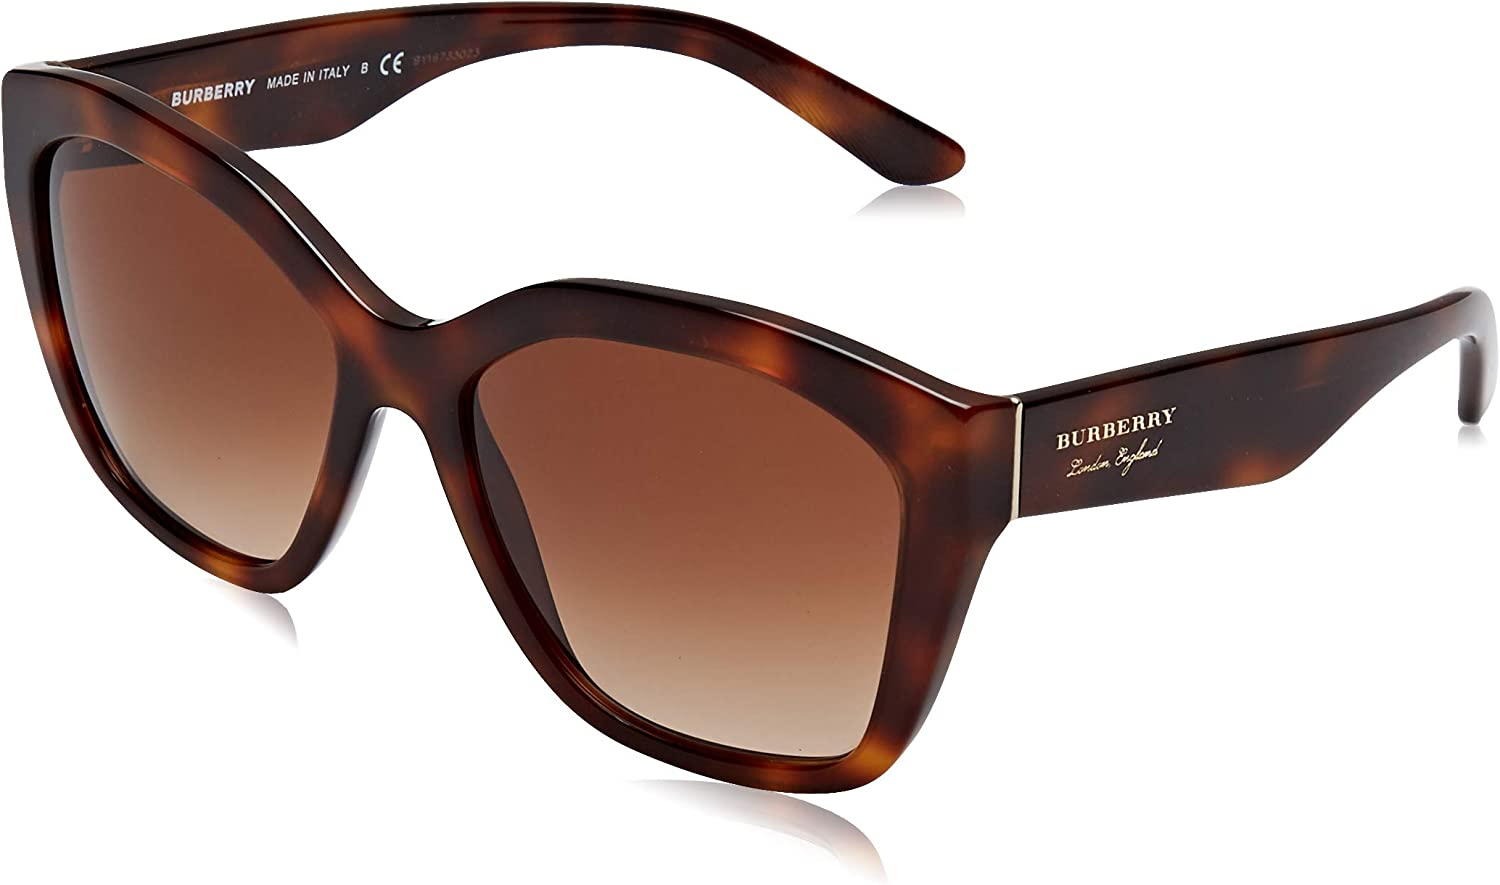 BURBERRY Sonnenbrille (BE4261) Marron (Light Havana/Browngradient)